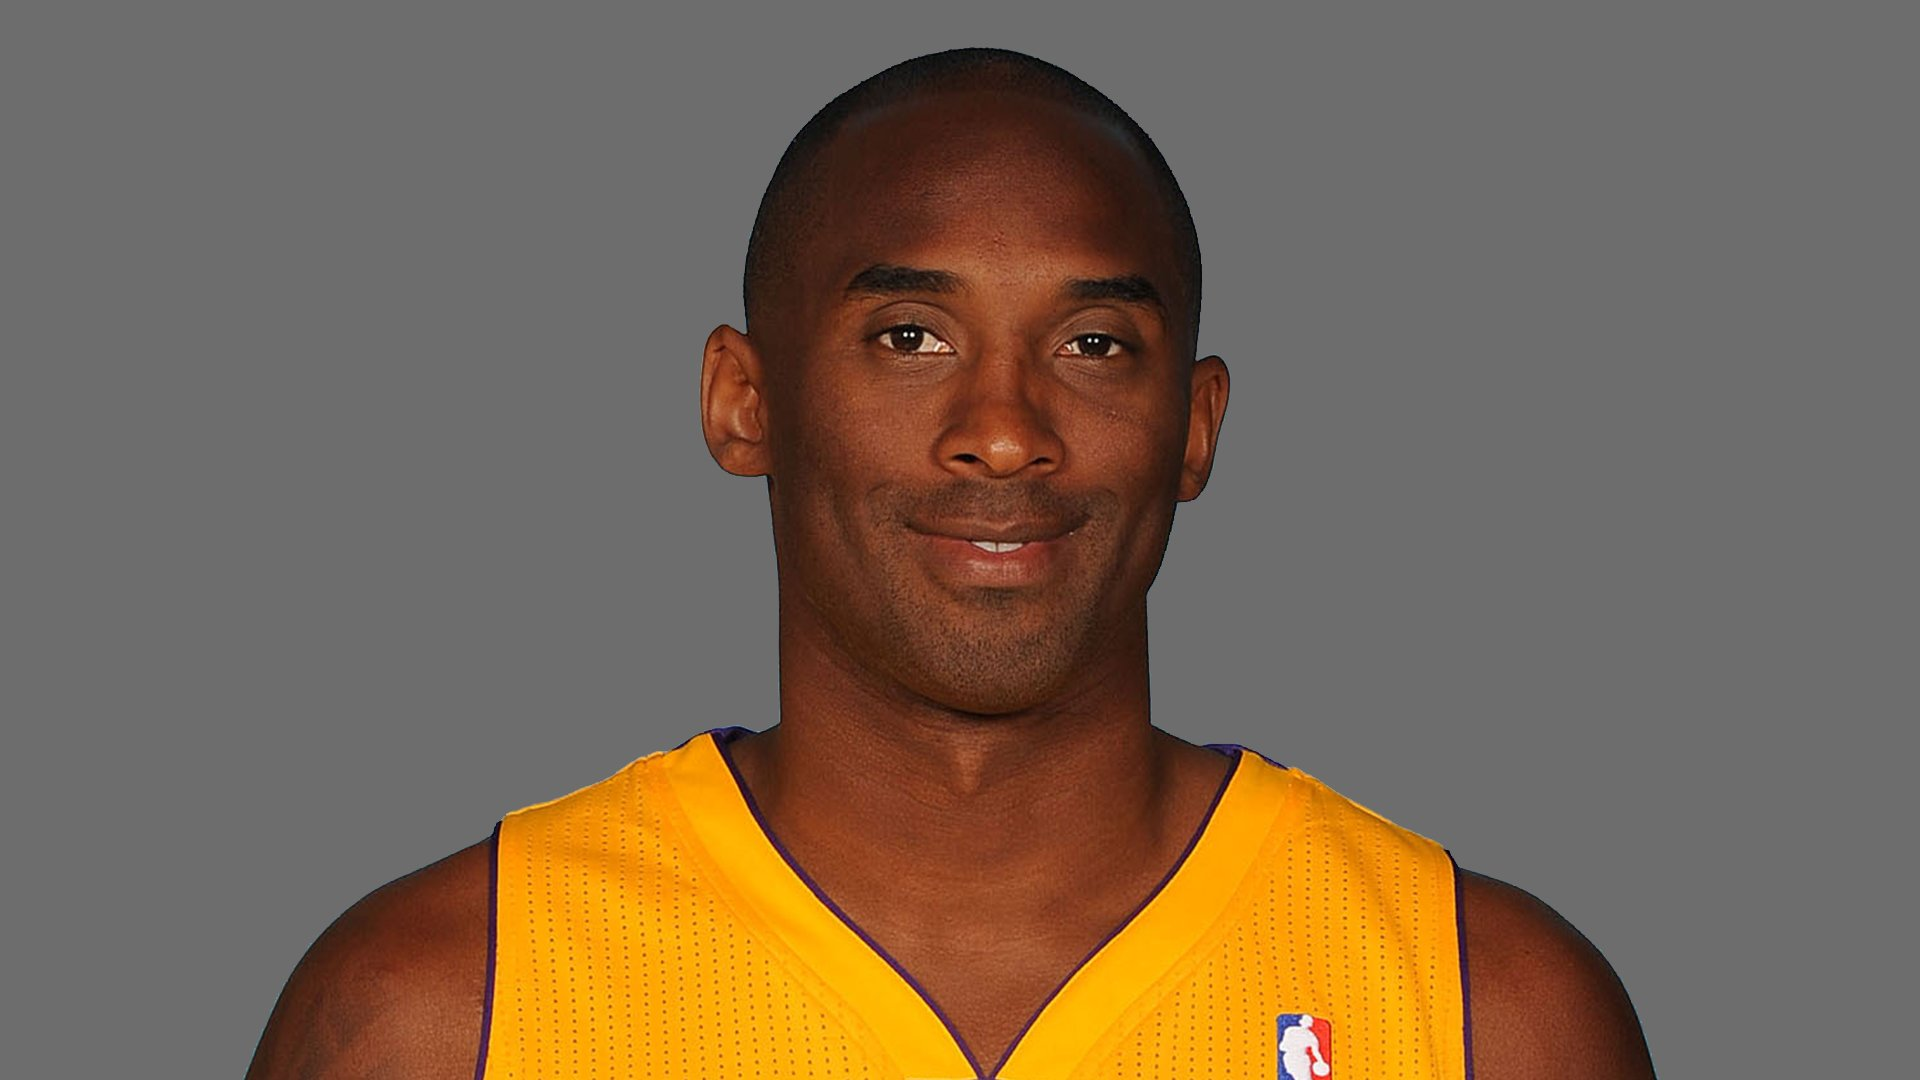 kobe bryant research paper On jan 22, 2006, los angeles lakers superstar kobe bryant shocked the league and scored 81 points in a 122-104 win over the toronto raptors at staples center, marking the second-highest scoring total in a game in nba history.